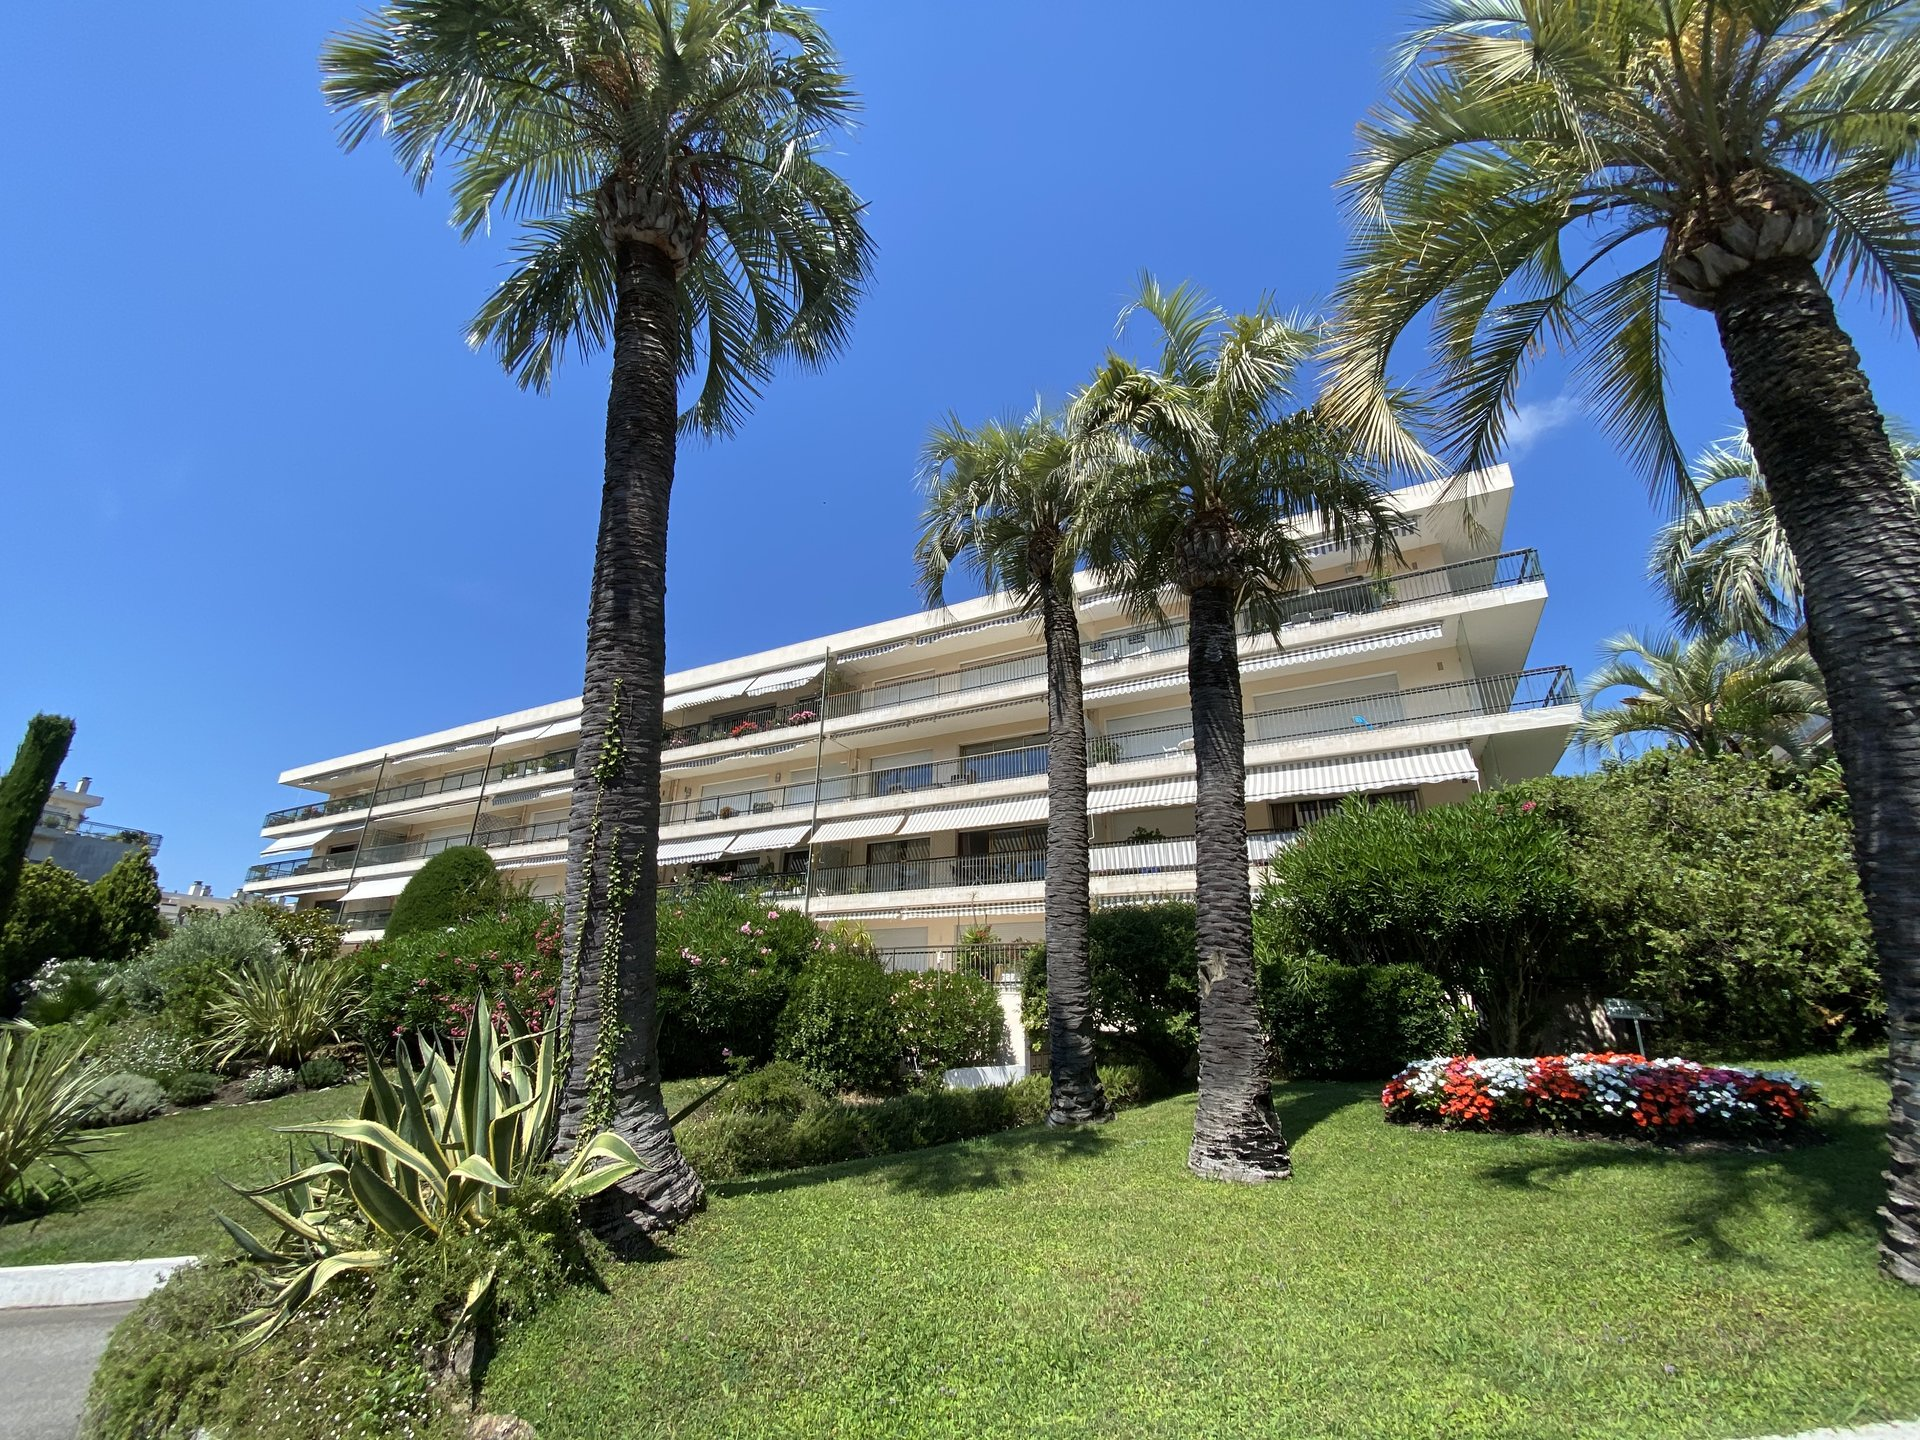 CANNES SALE APARTMENT 4 ROOMS LUXURY RESIDENCE WITH CARETAKER AND SWIMMING POOL NEAR BEACHES